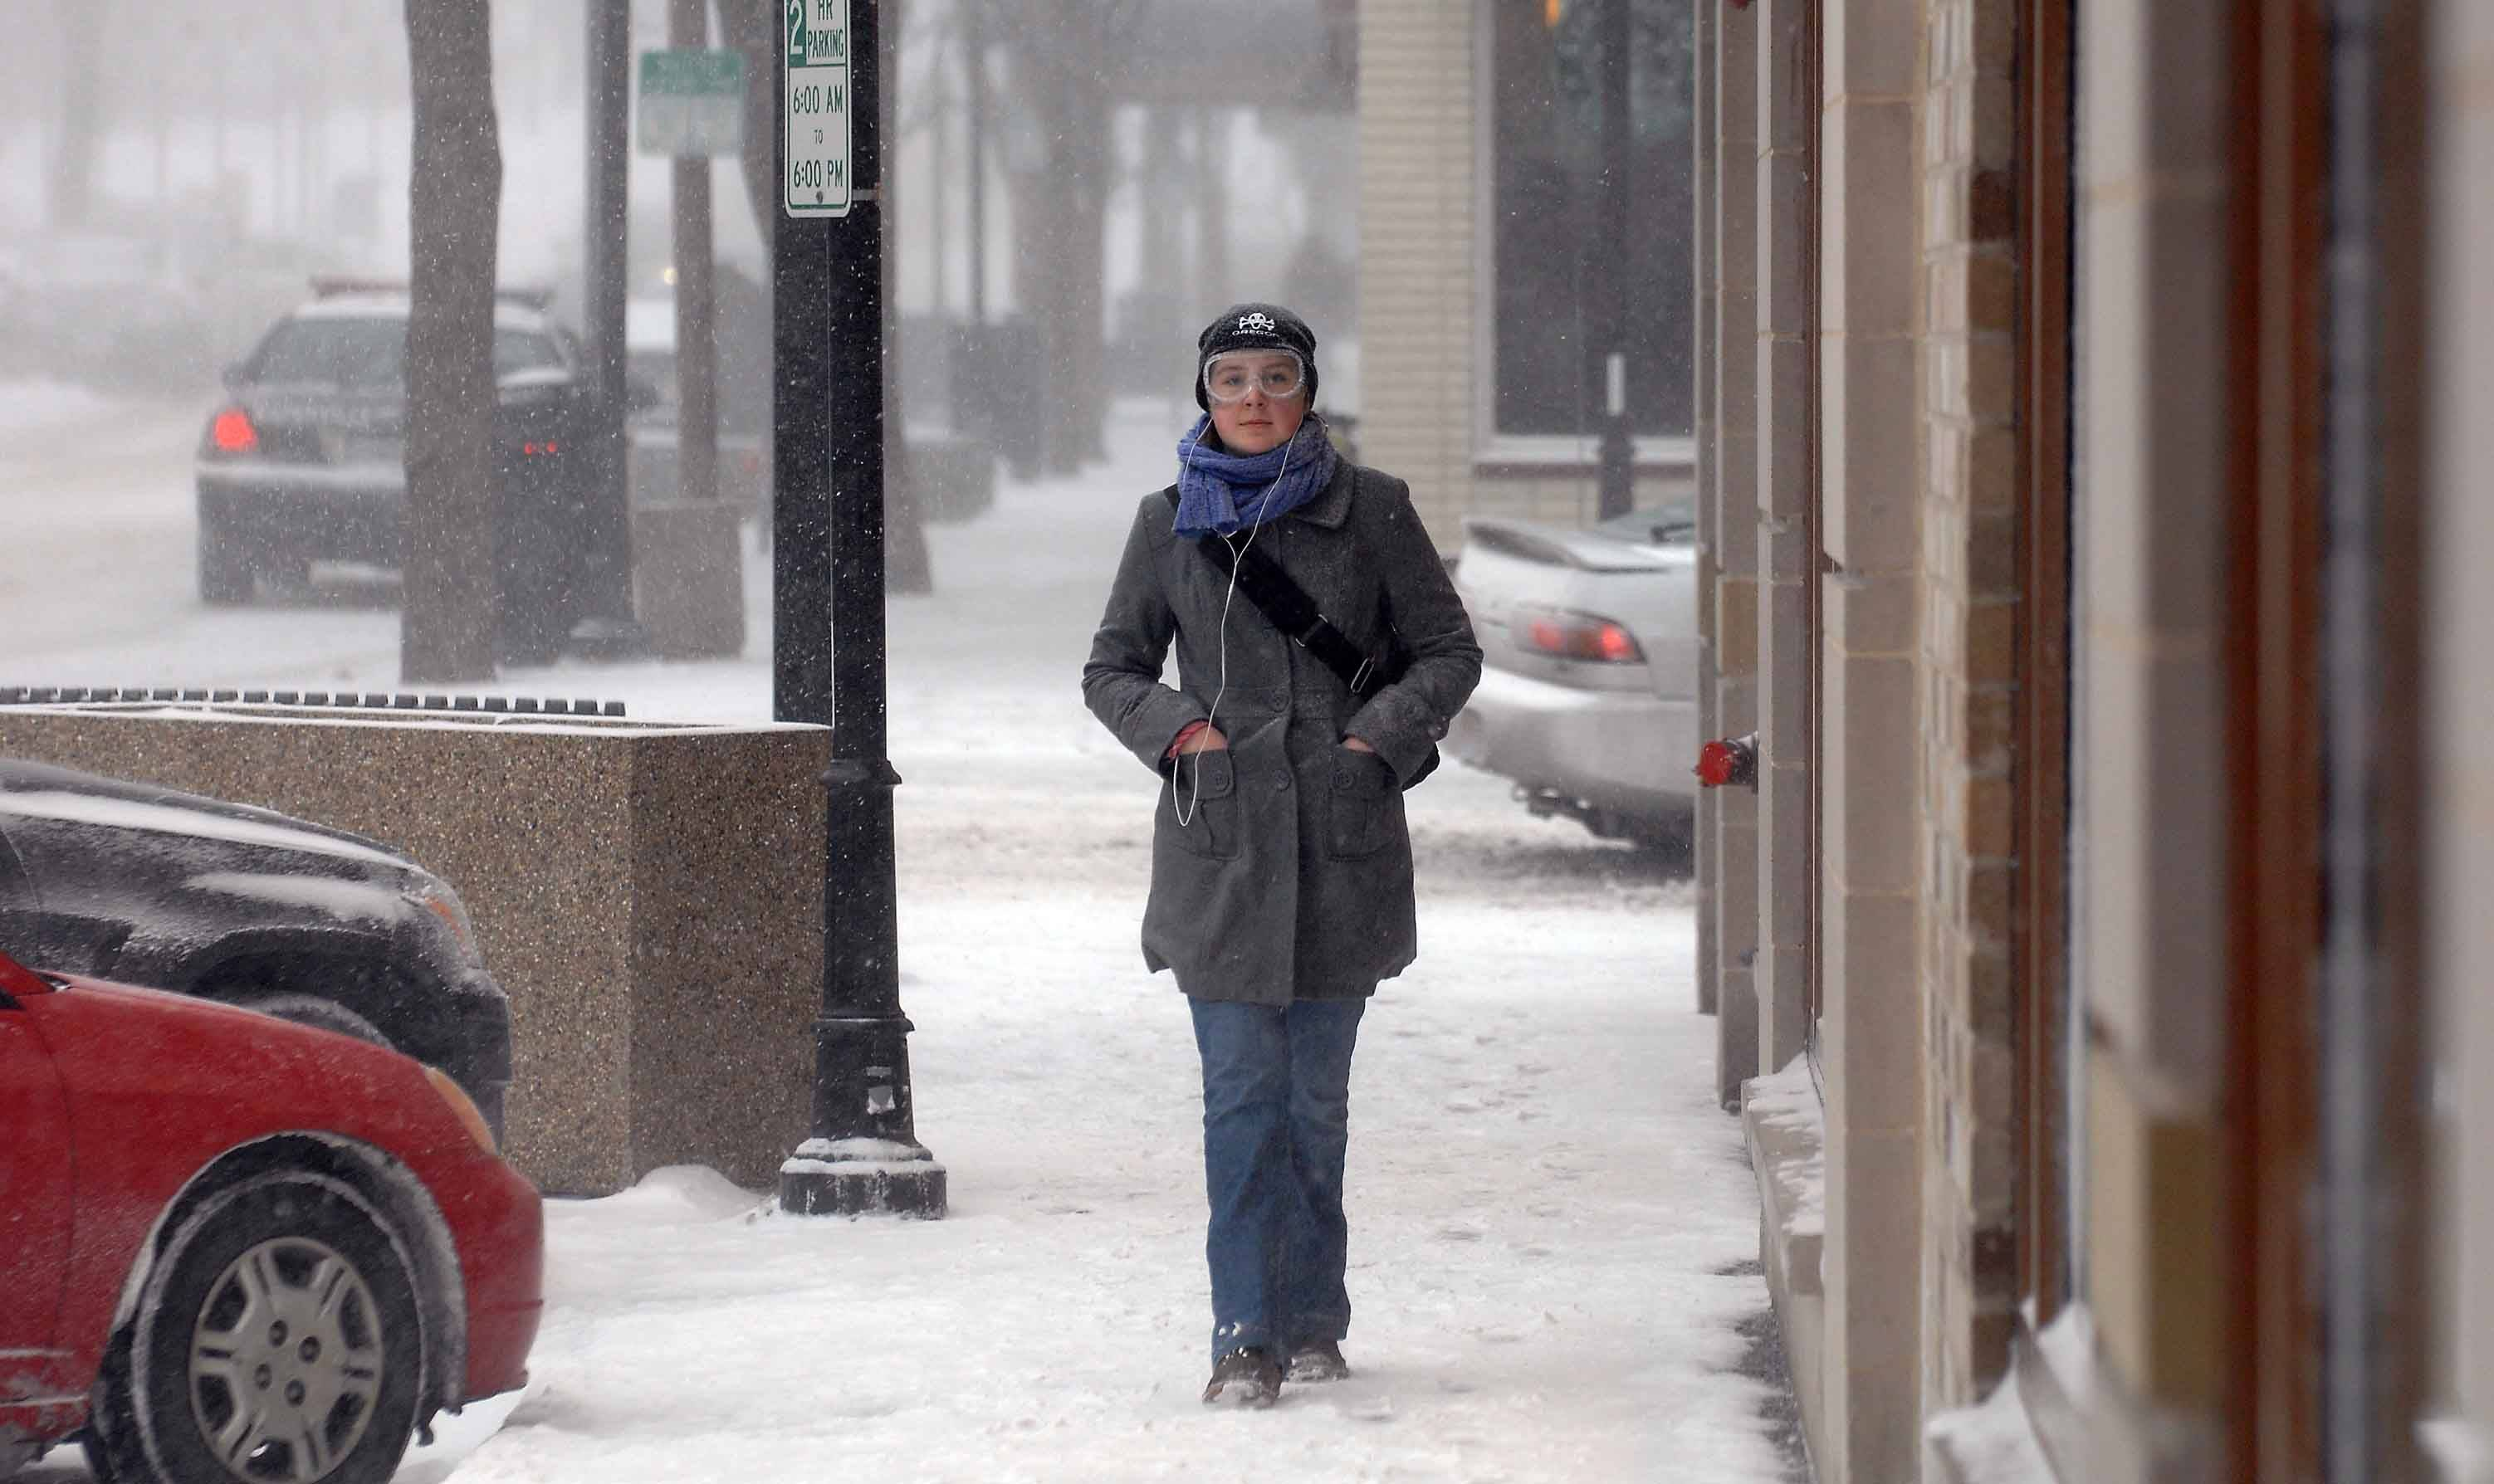 Julia Shaver of Naperville sports a pair of chemistry safety goggles during her walk in downtown Naperville during the February storm.